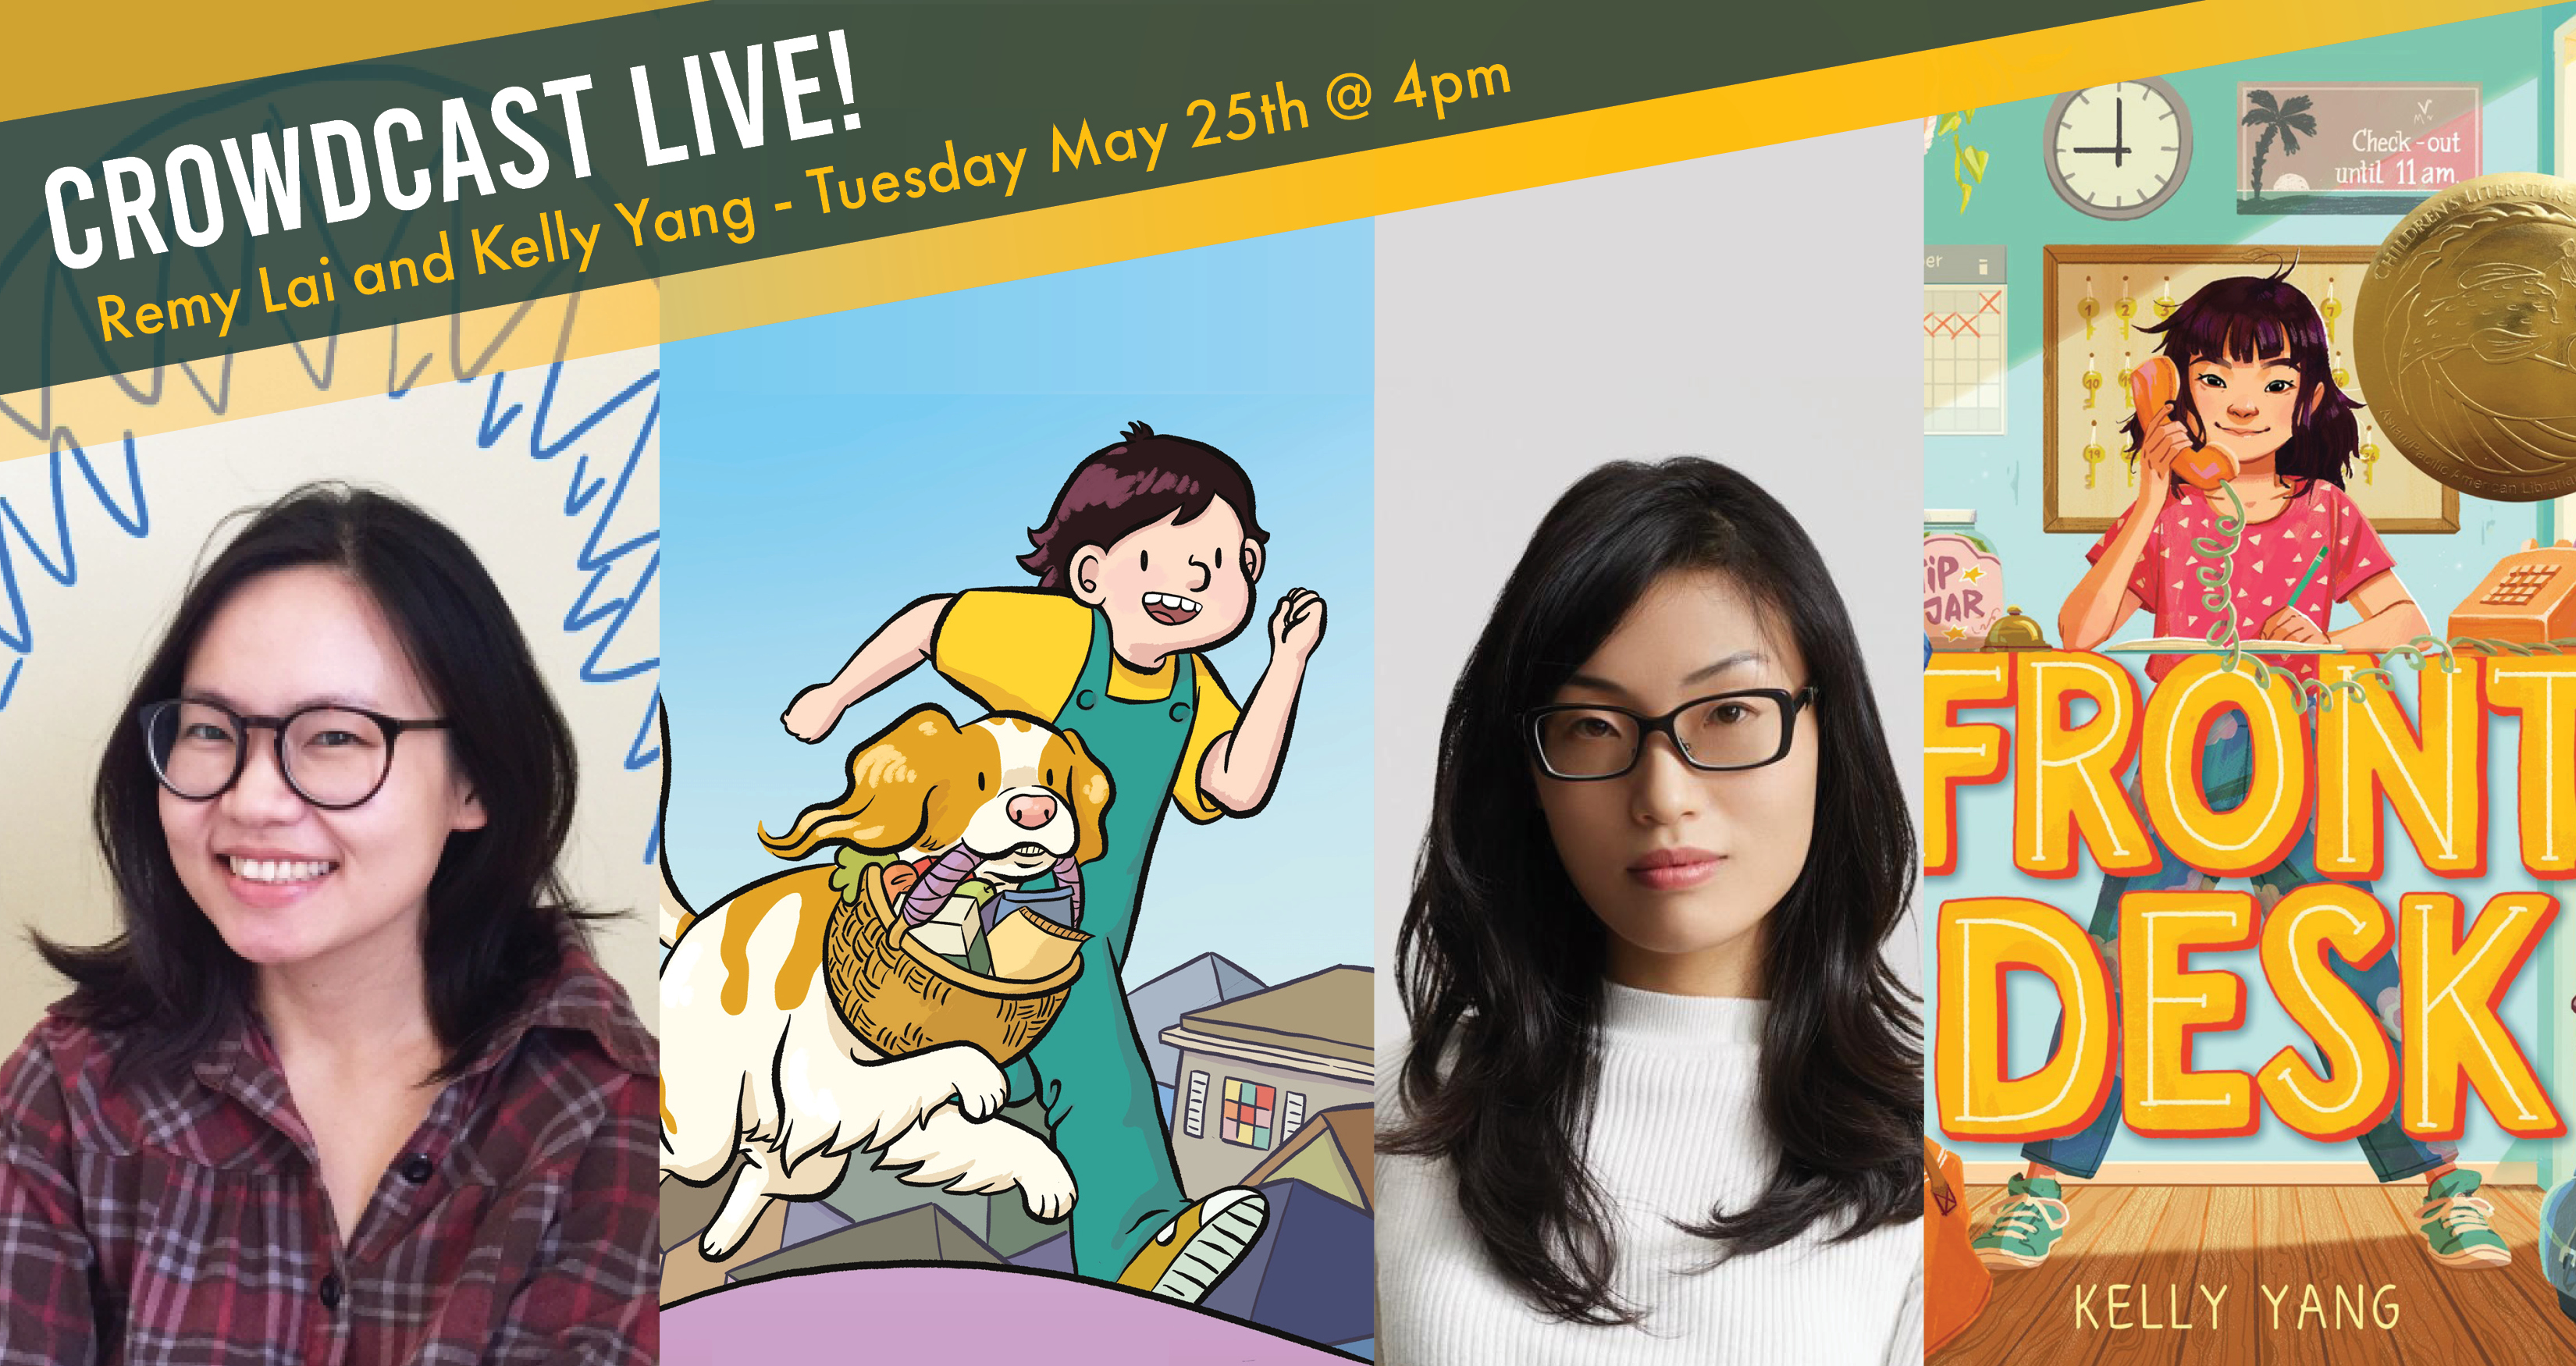 CrowdCast LIVE event with Remy Lai and Kelly Yang